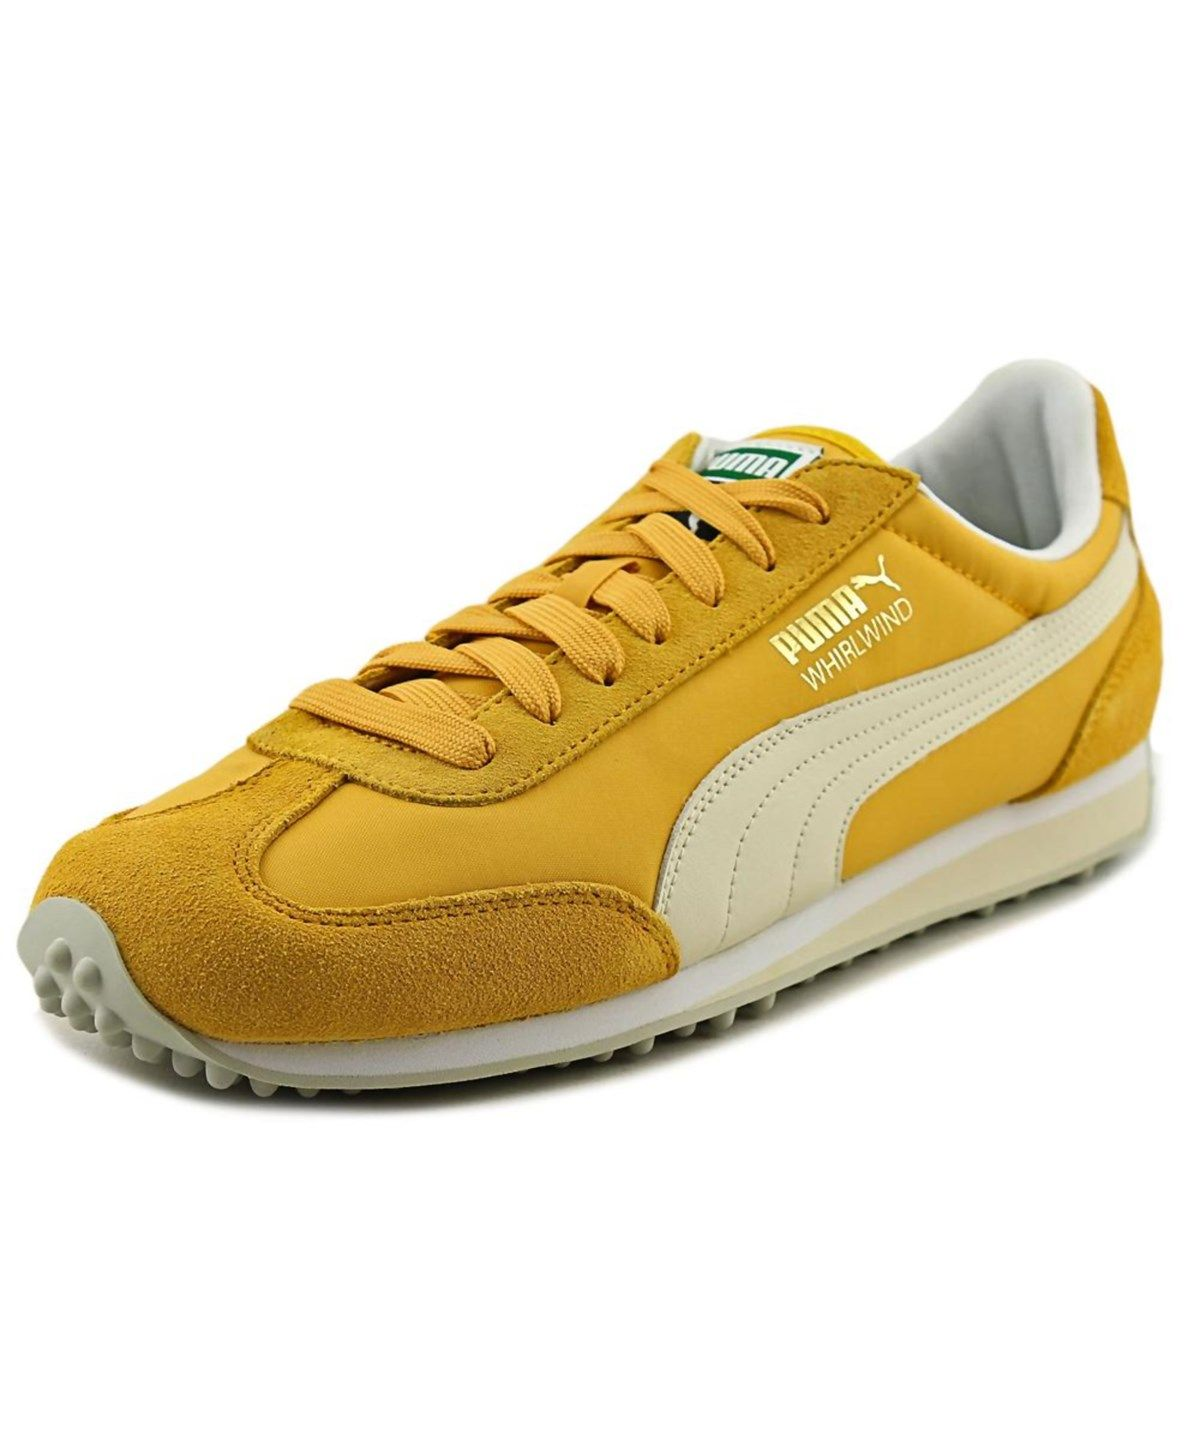 39fd45e530ec PUMA Puma Whirlwind Classic Suede Fashion Sneakers .  puma  shoes  sneakers